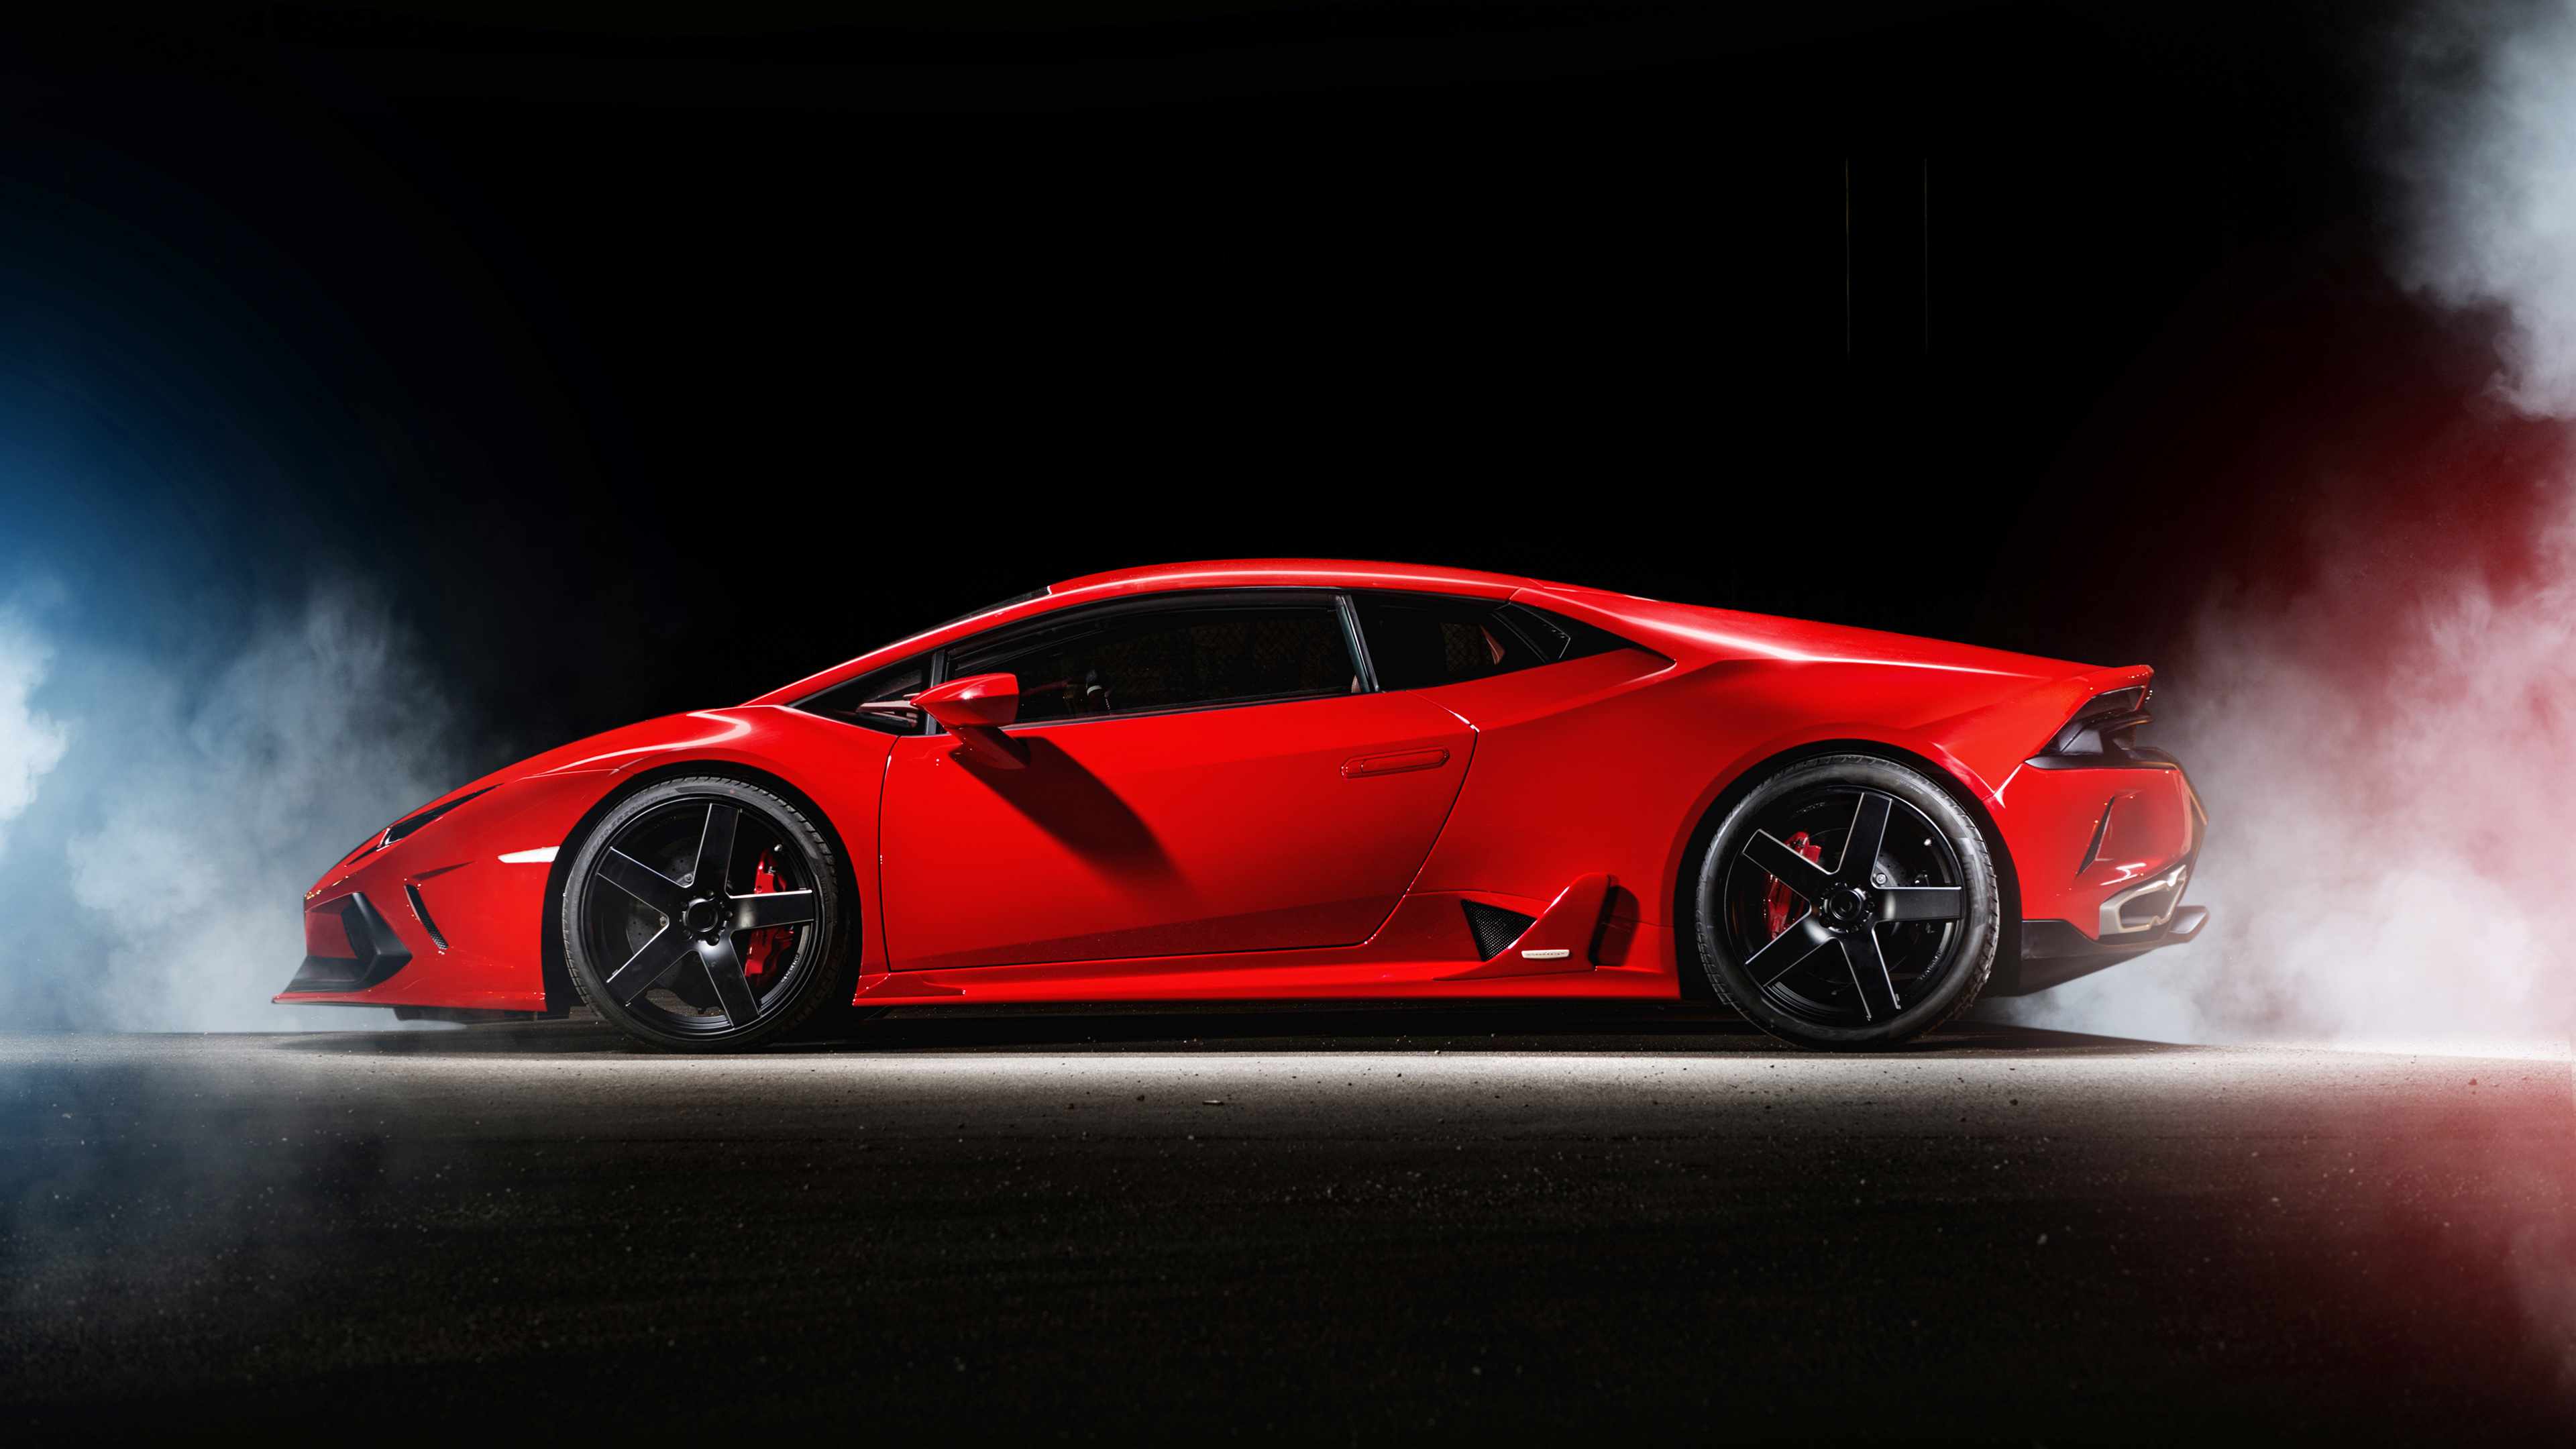 2015 ares design lamborghini huracan 3 wallpaper hd car